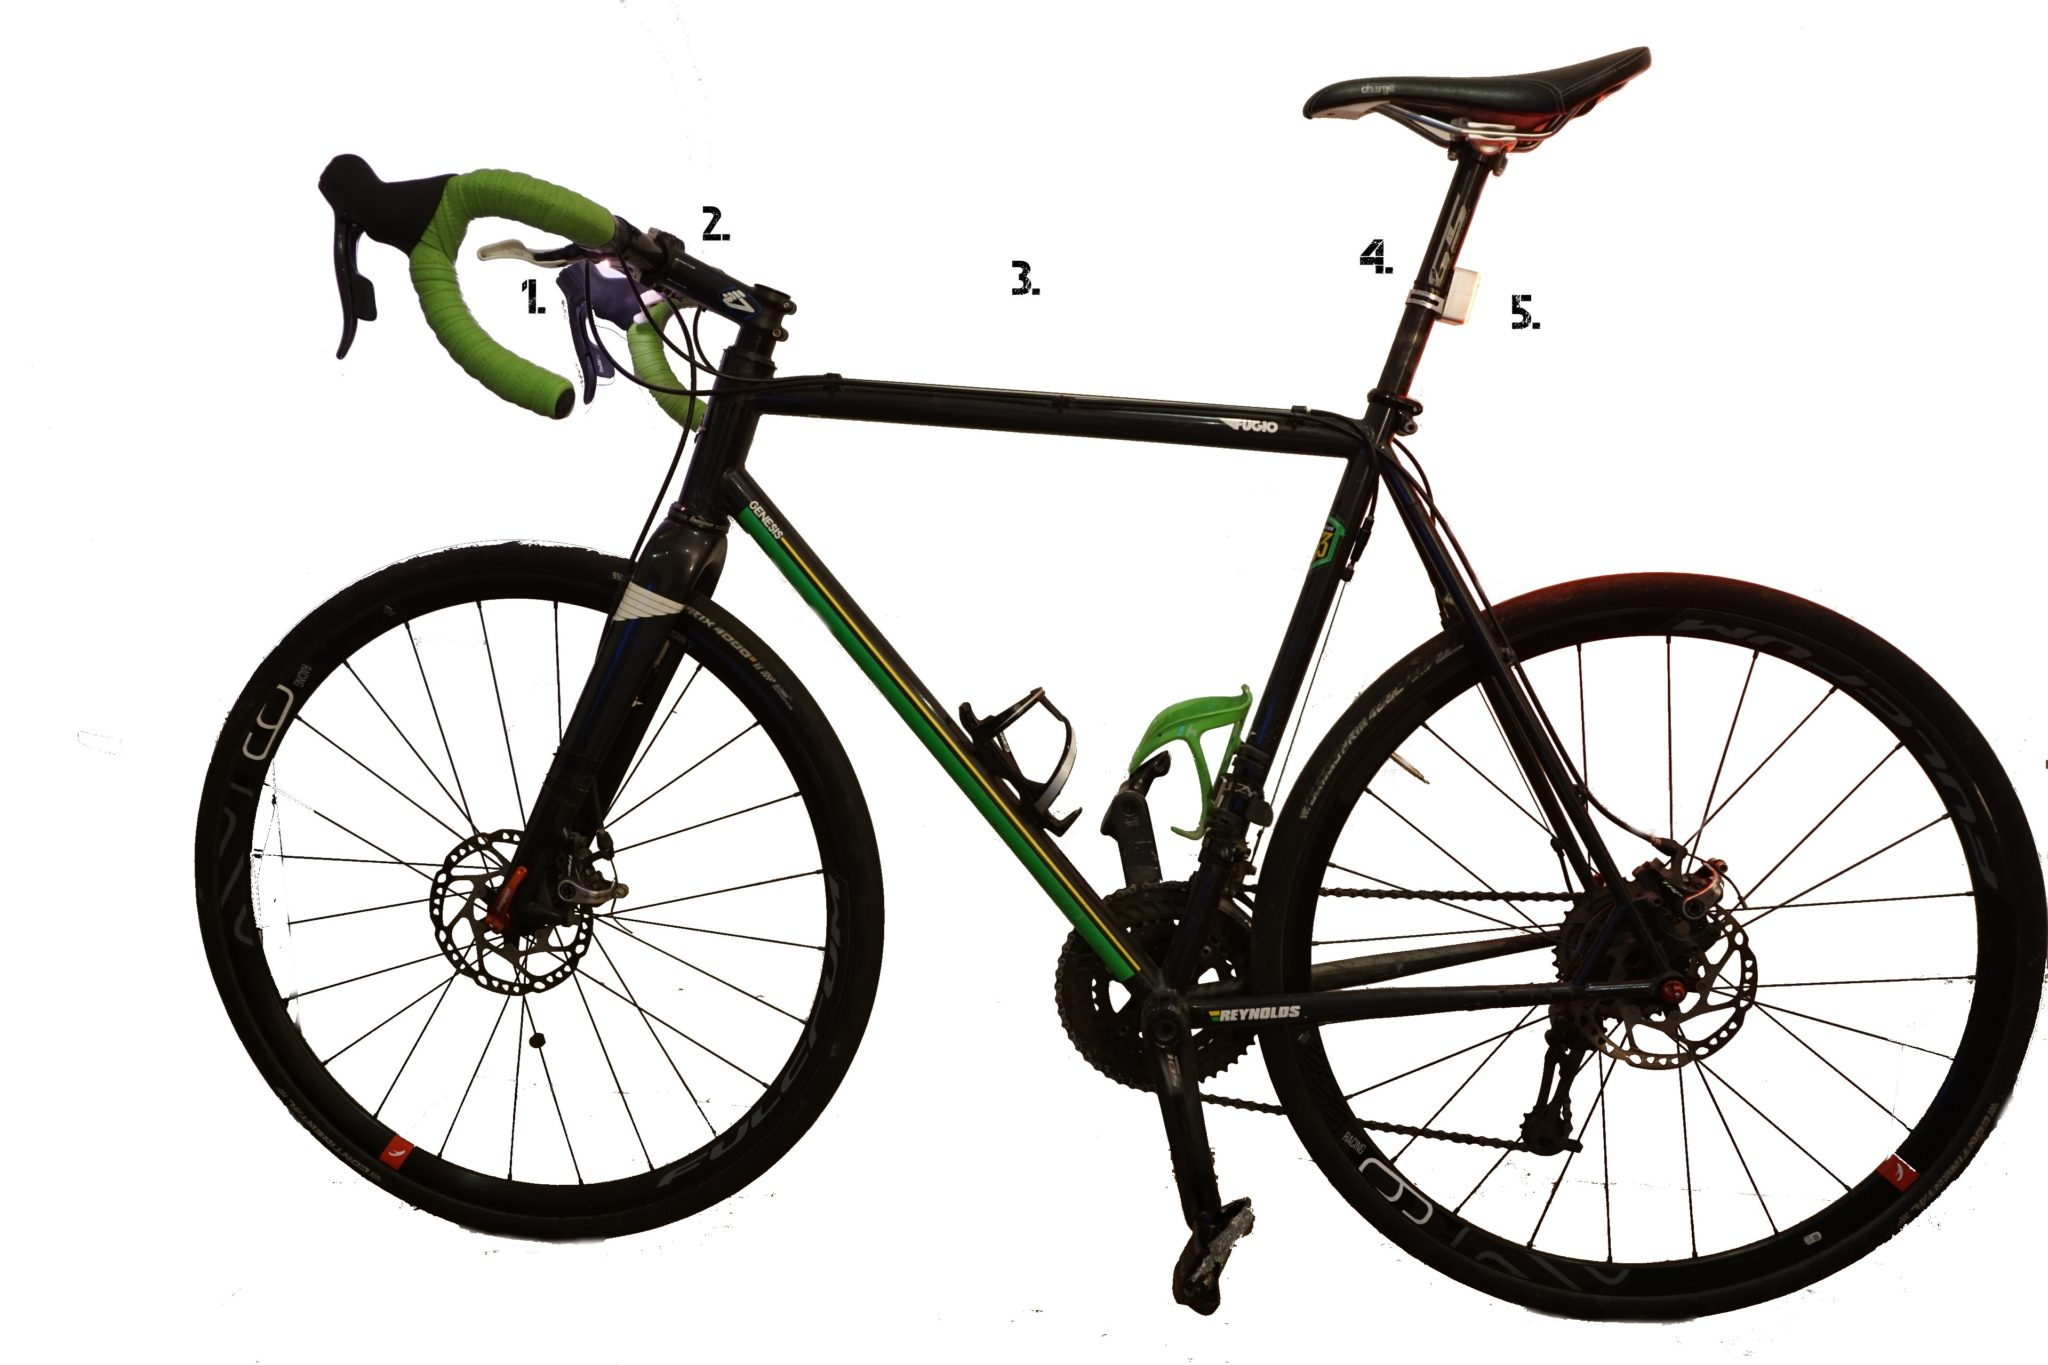 bike with numbers